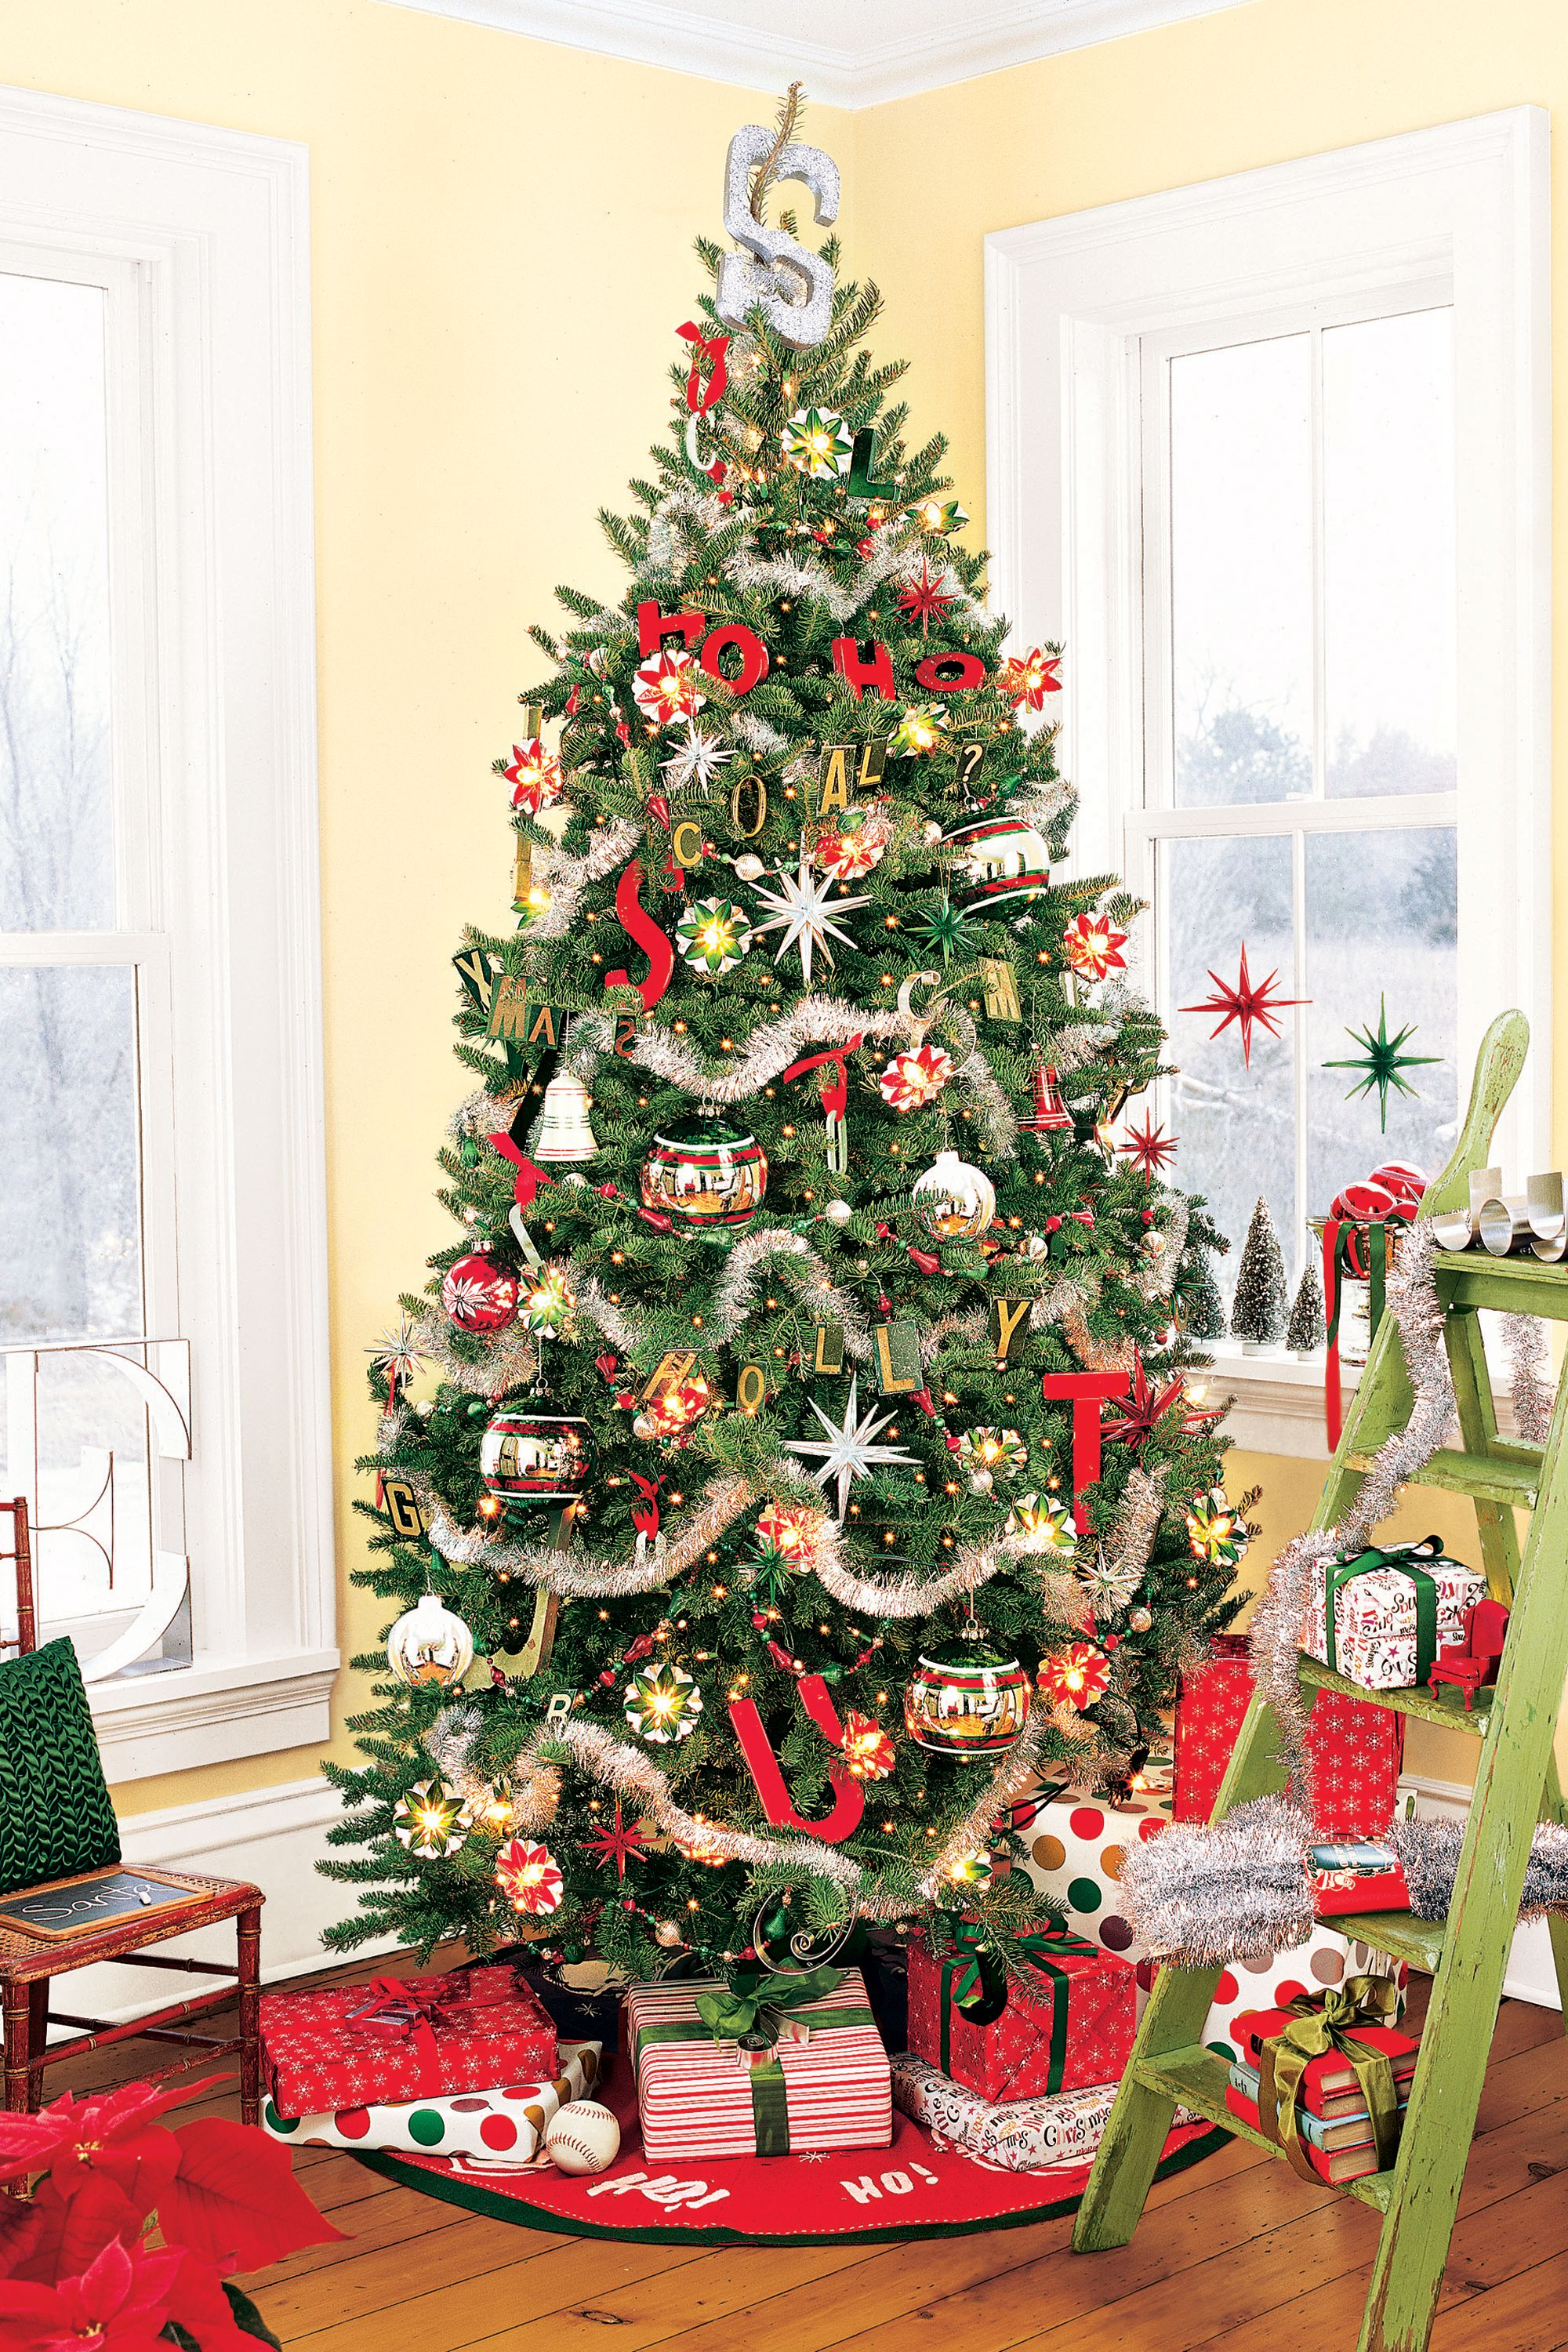 Christmas Tree Ideas Decoration You Can Make Efforts To Decorate The In Many Ways Are